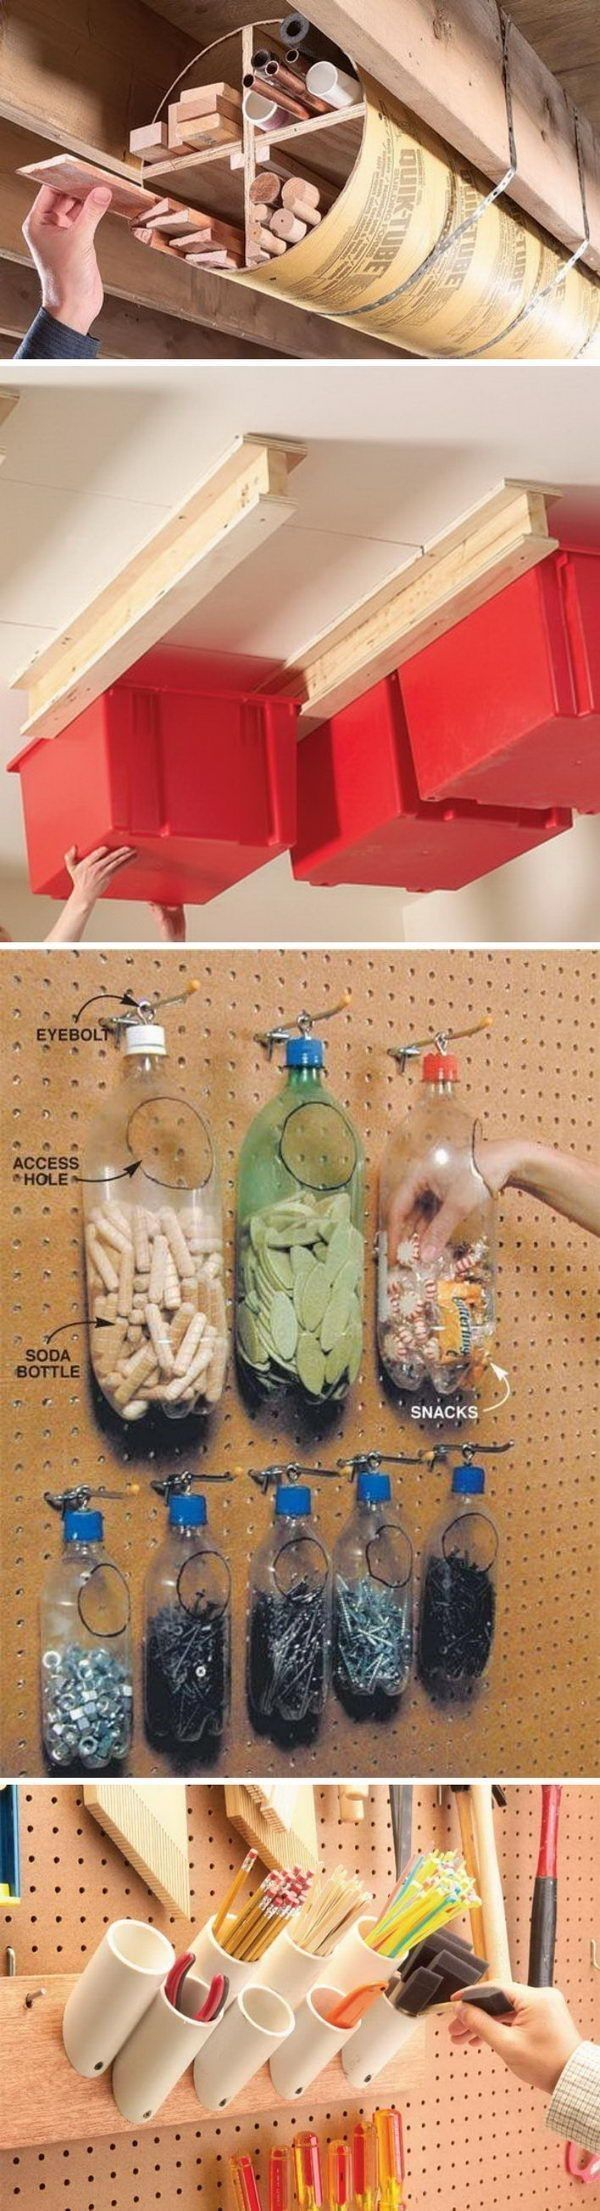 Shed Plans - Clever Garage Storage and Organization Ideas Now You Can Build ANY Shed In A Weekend Even If You've Zero Woodworking Experience! #shedorganizationtips #shedplans #organizationideas #shedorganizationideas #shedstorageideas #woodworkingideas